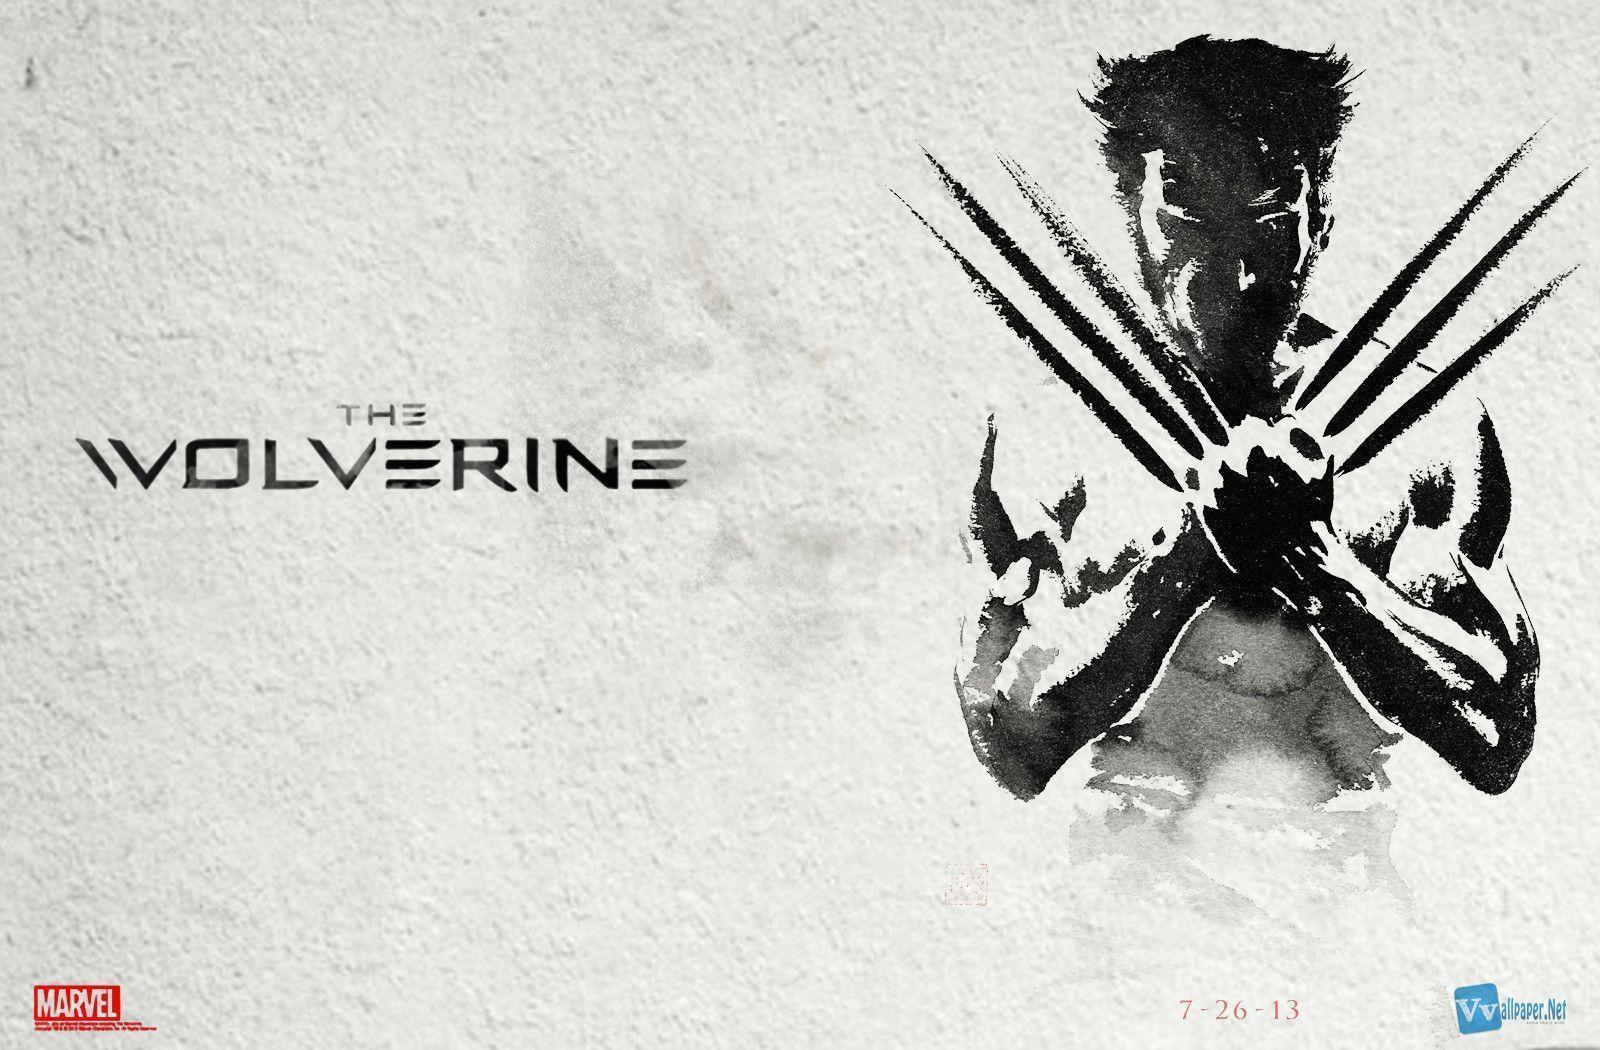 Marvel-The-Wolverine-Movie-2013-HD-Wallpaper | The Modern M.A.G.E